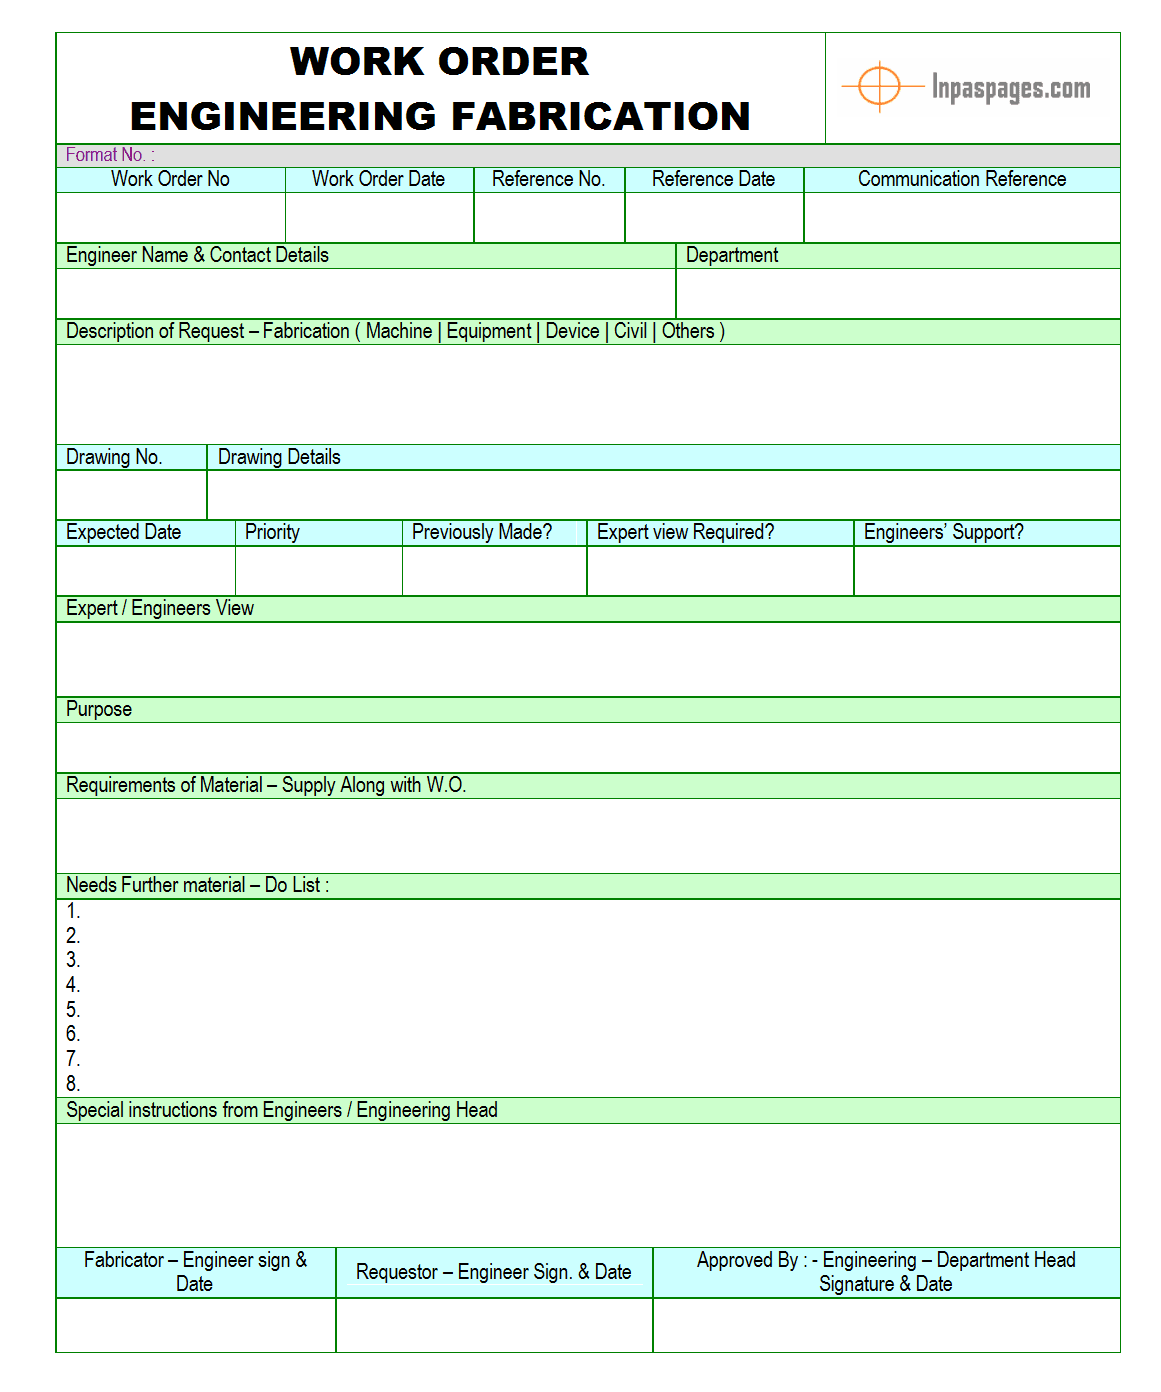 work order for engineering fabrication format image 01 examples formats download for free